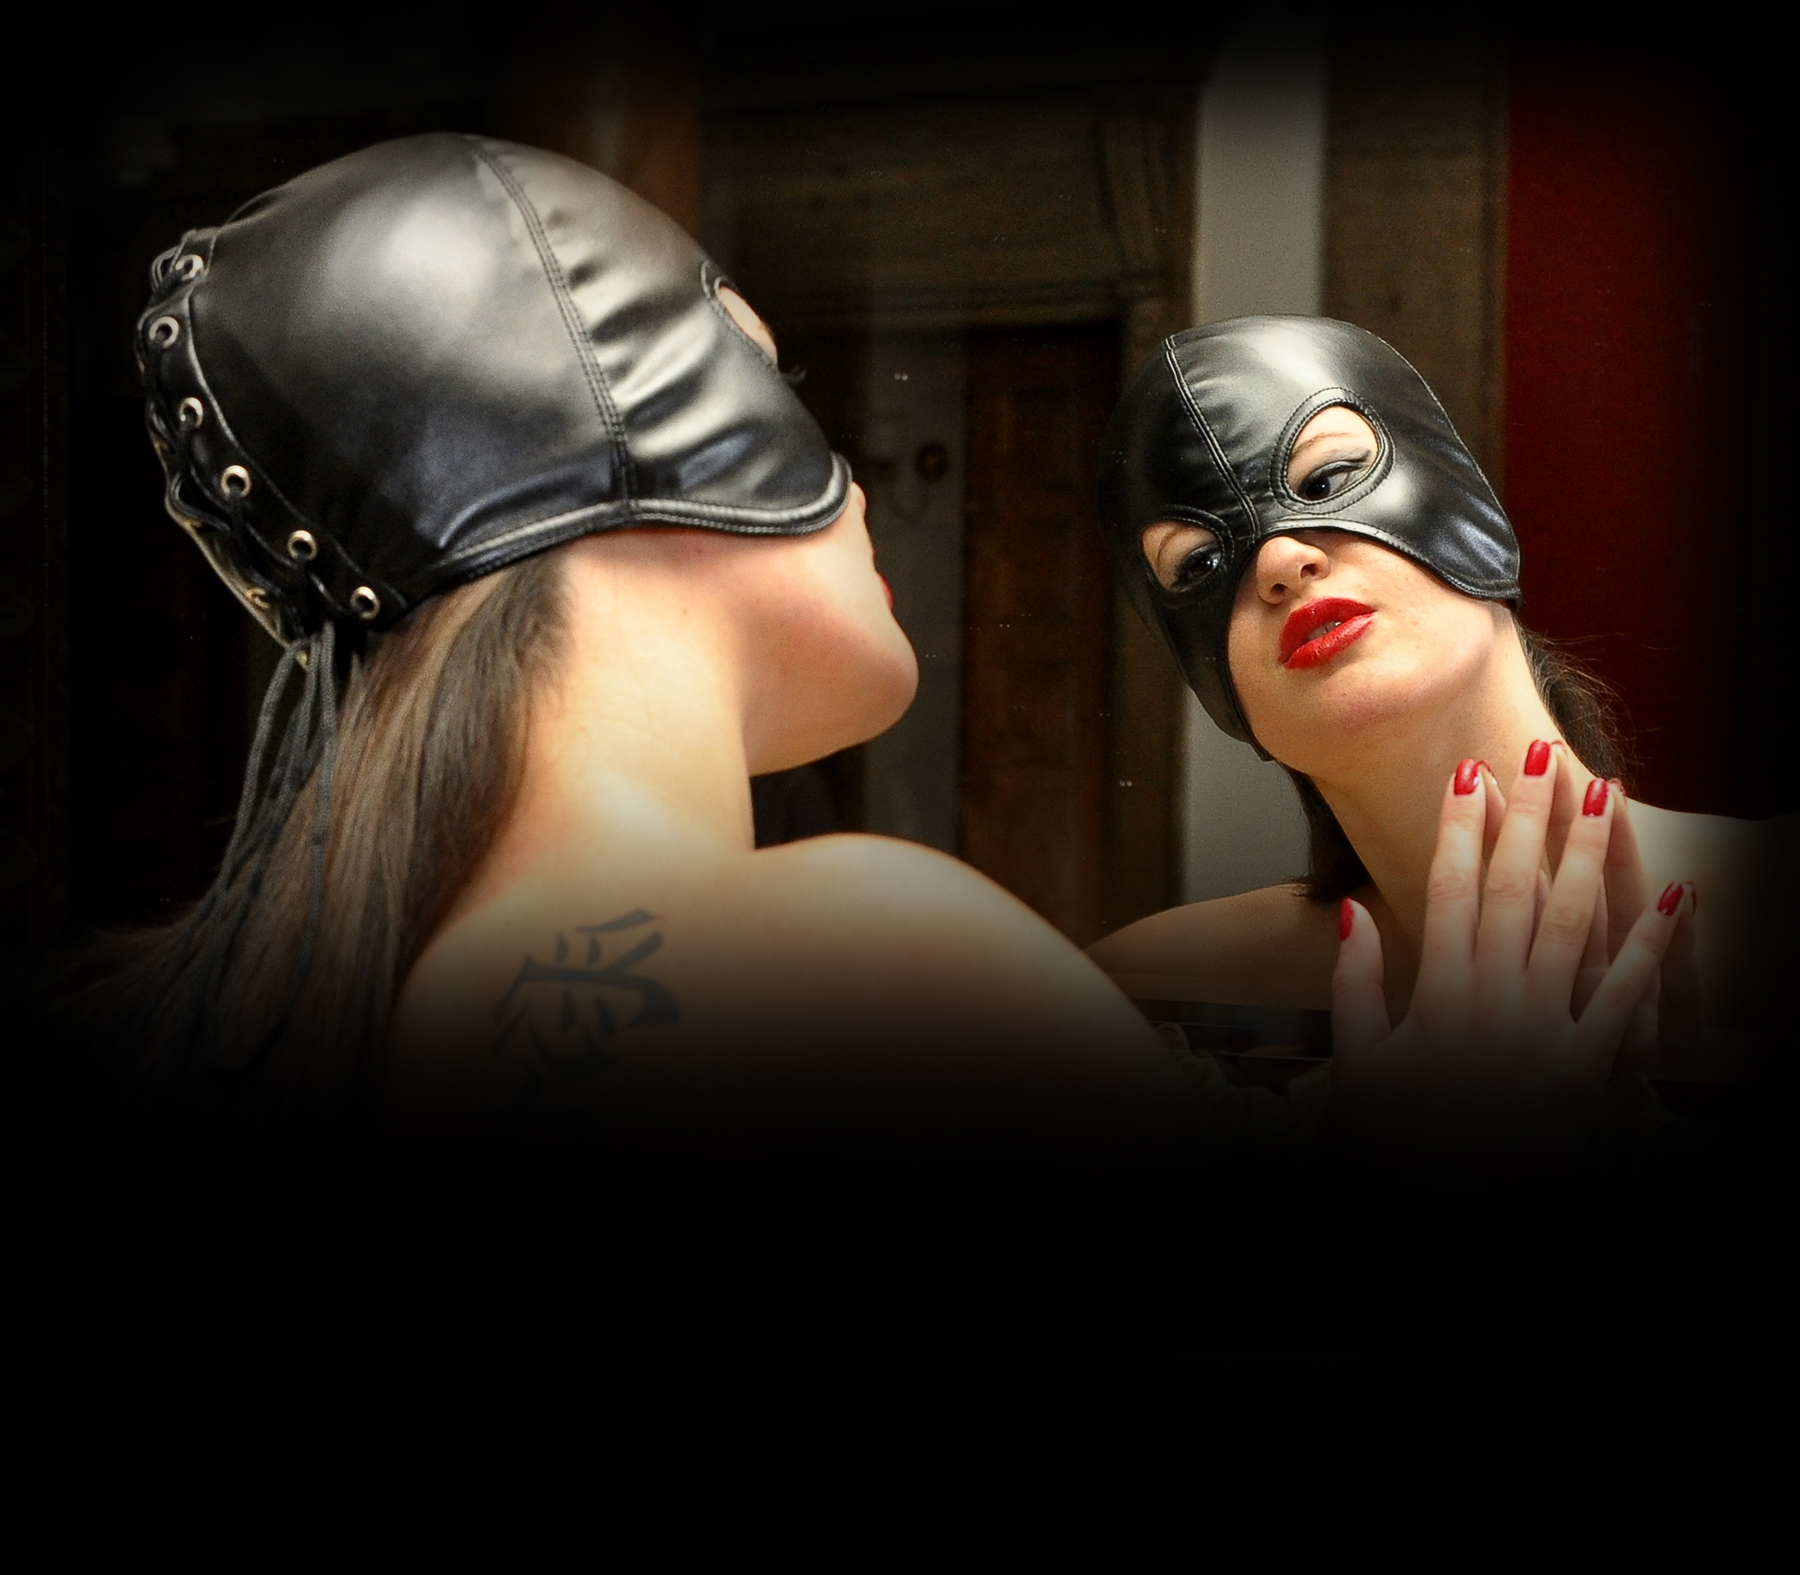 fetish hood, fetish mask, bdsm hood, bdsm mask, fetish store, bdsm store, espressivo club, espressivoclub, half-hood, leather mask, leather hood, bdsm-gear, head mask, fetish event, fetish party, bdsm event, bdsm clothing, fetish accessories